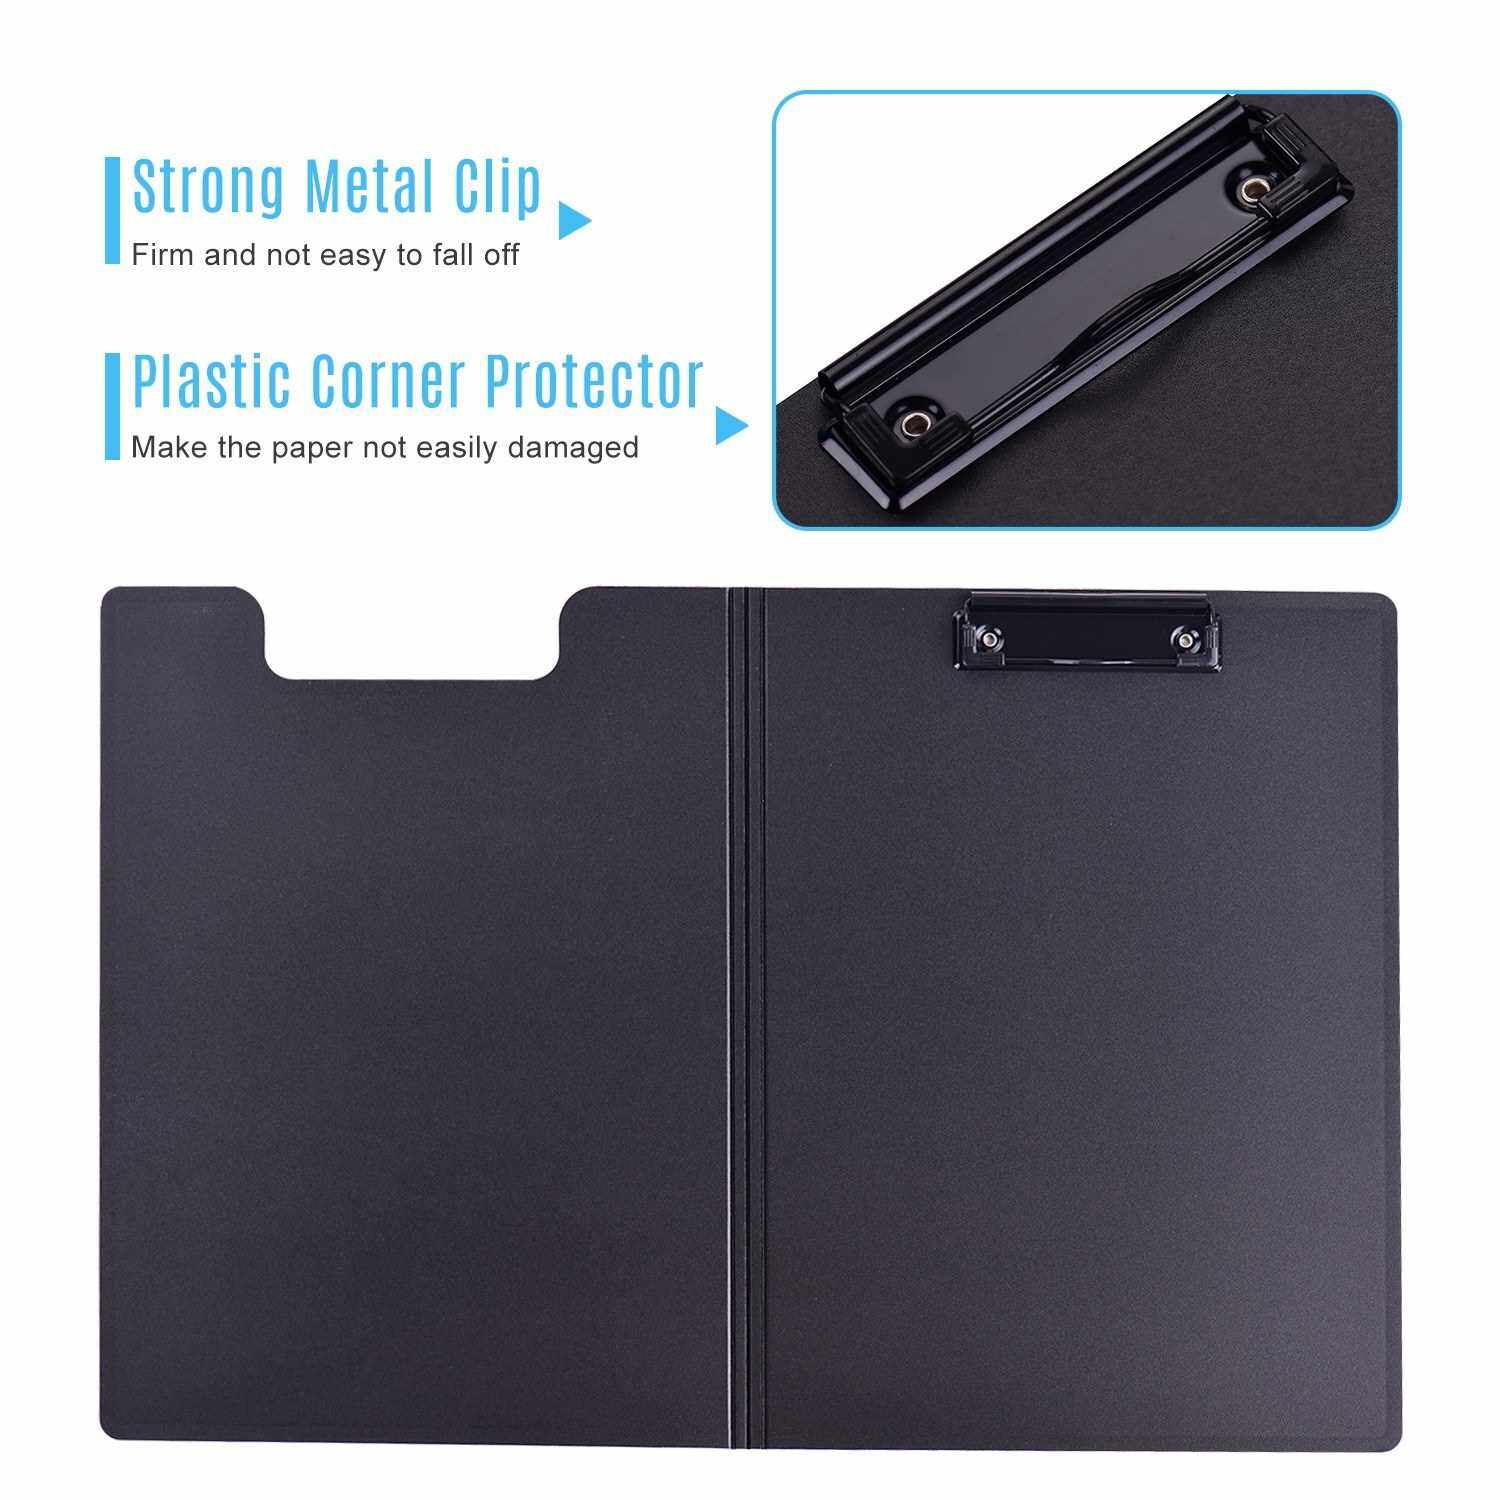 A4 Letter Size Clipboard Colorful File Cover Folder Document Organizer Storage Writing Pad Stationery for School Office Business Meeting (Light Blue)